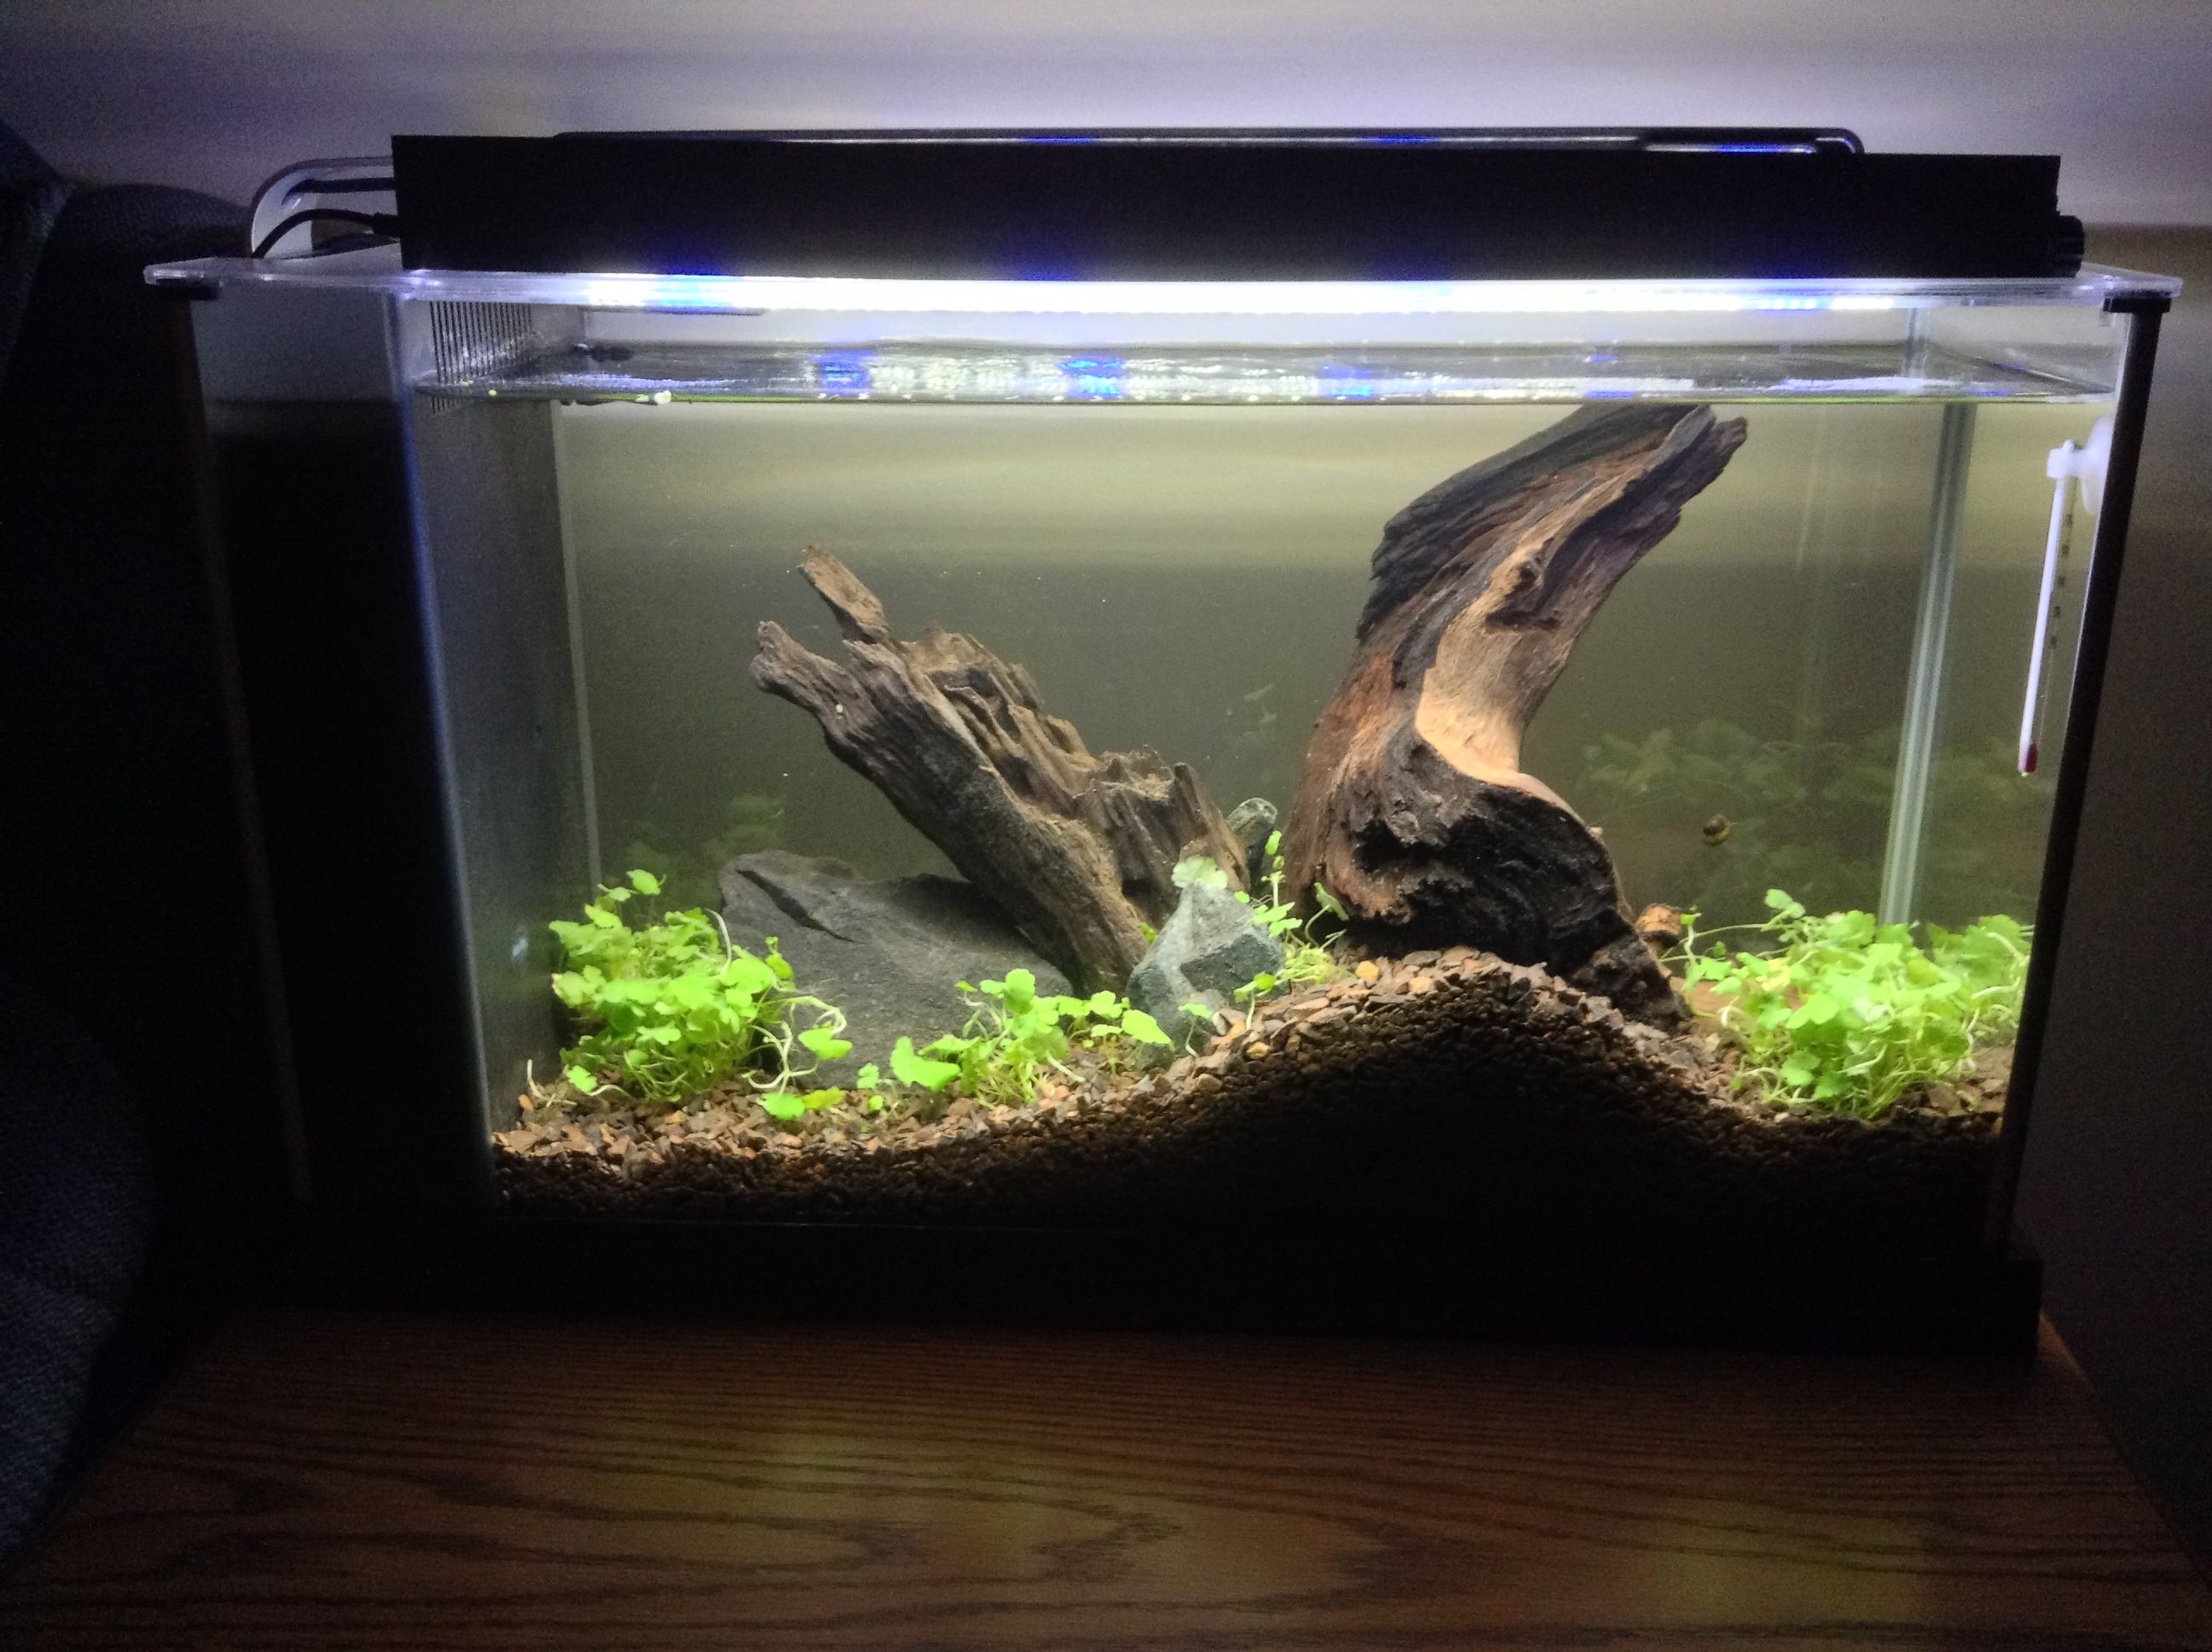 Superior Fluval Spec V With Hydrocotyle Sibthorpioides